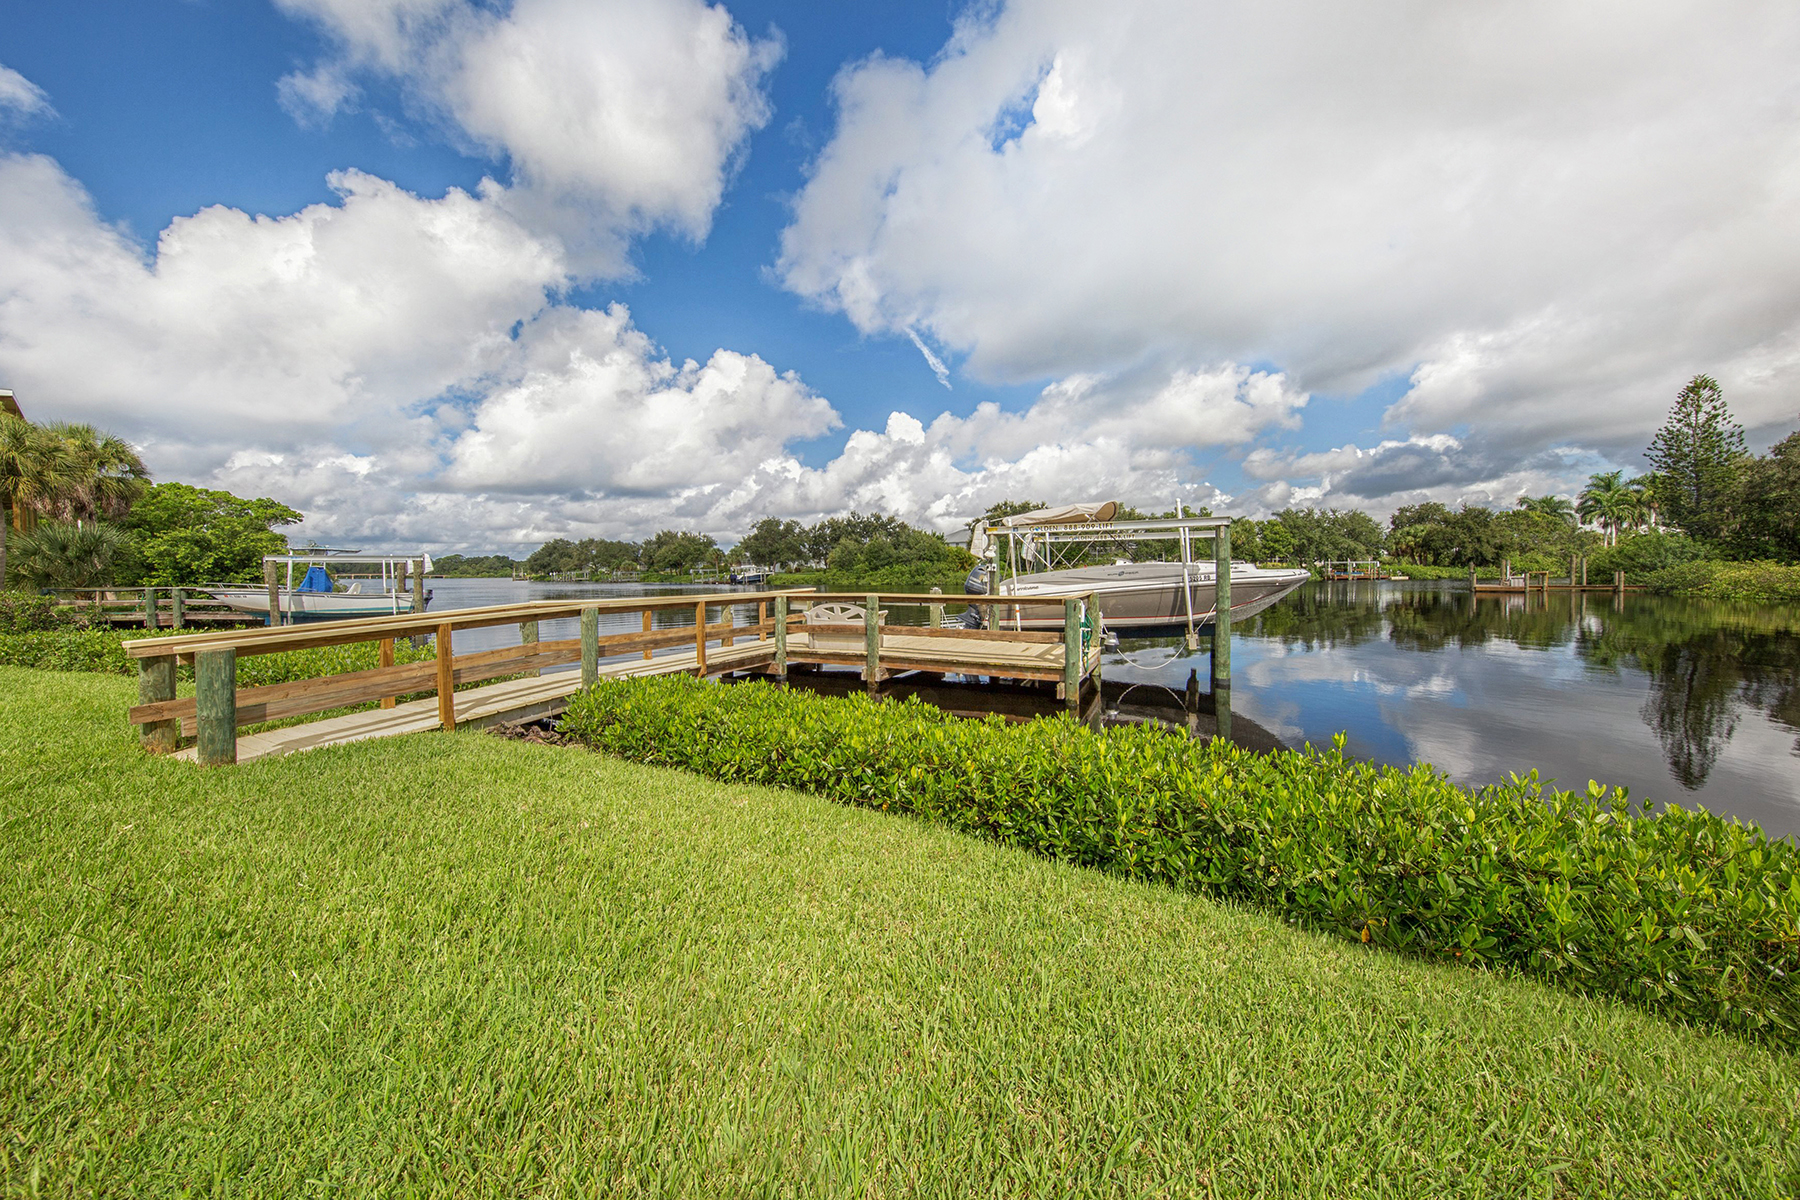 Land for Sale at NOKOMIS 904 Lucille Ave 000 Nokomis, Florida, 34275 United States